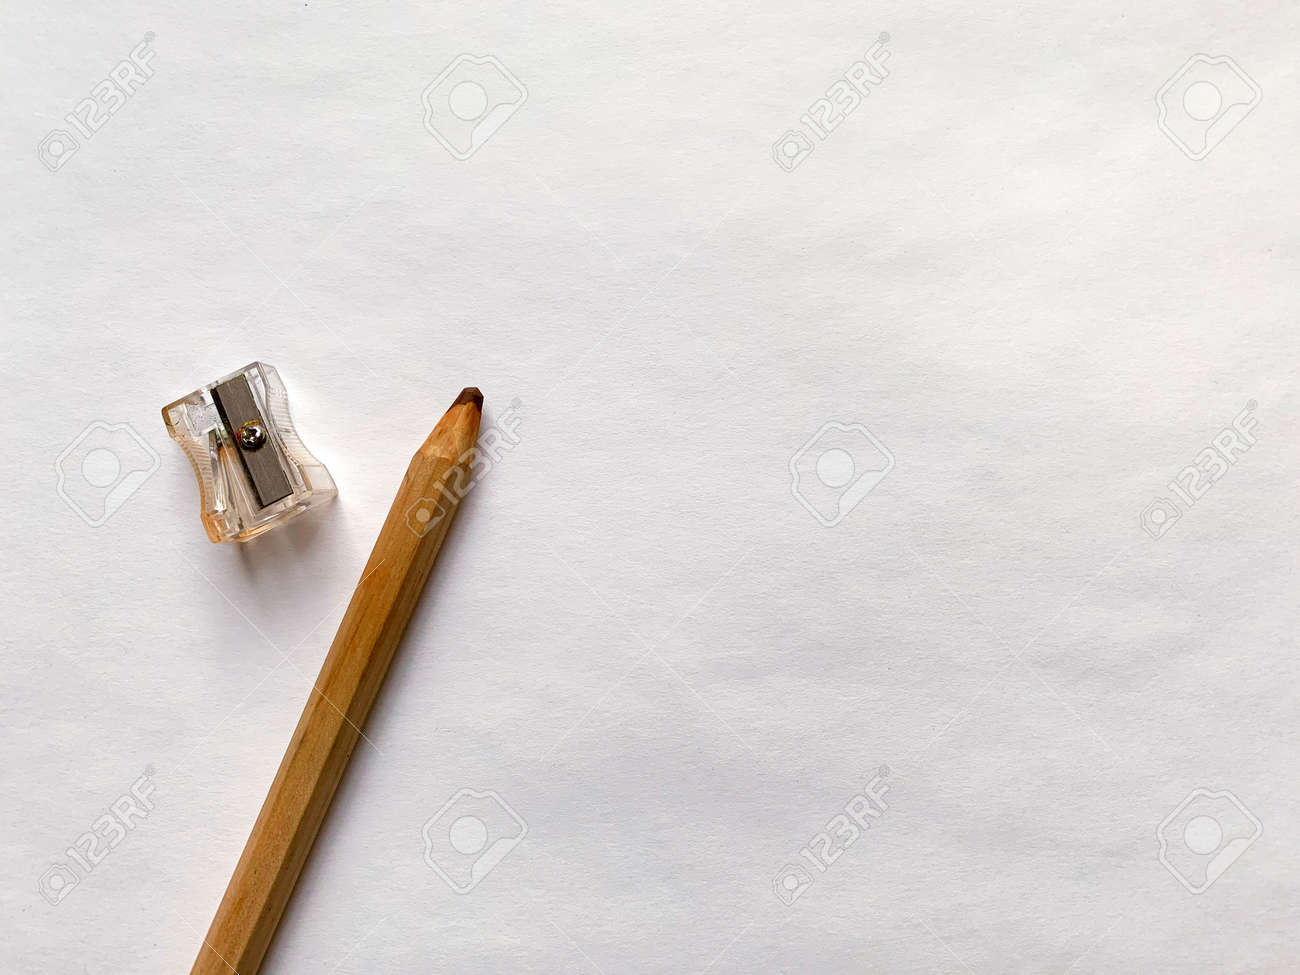 Sharpener and brown pencil on white paper background. - 169603122